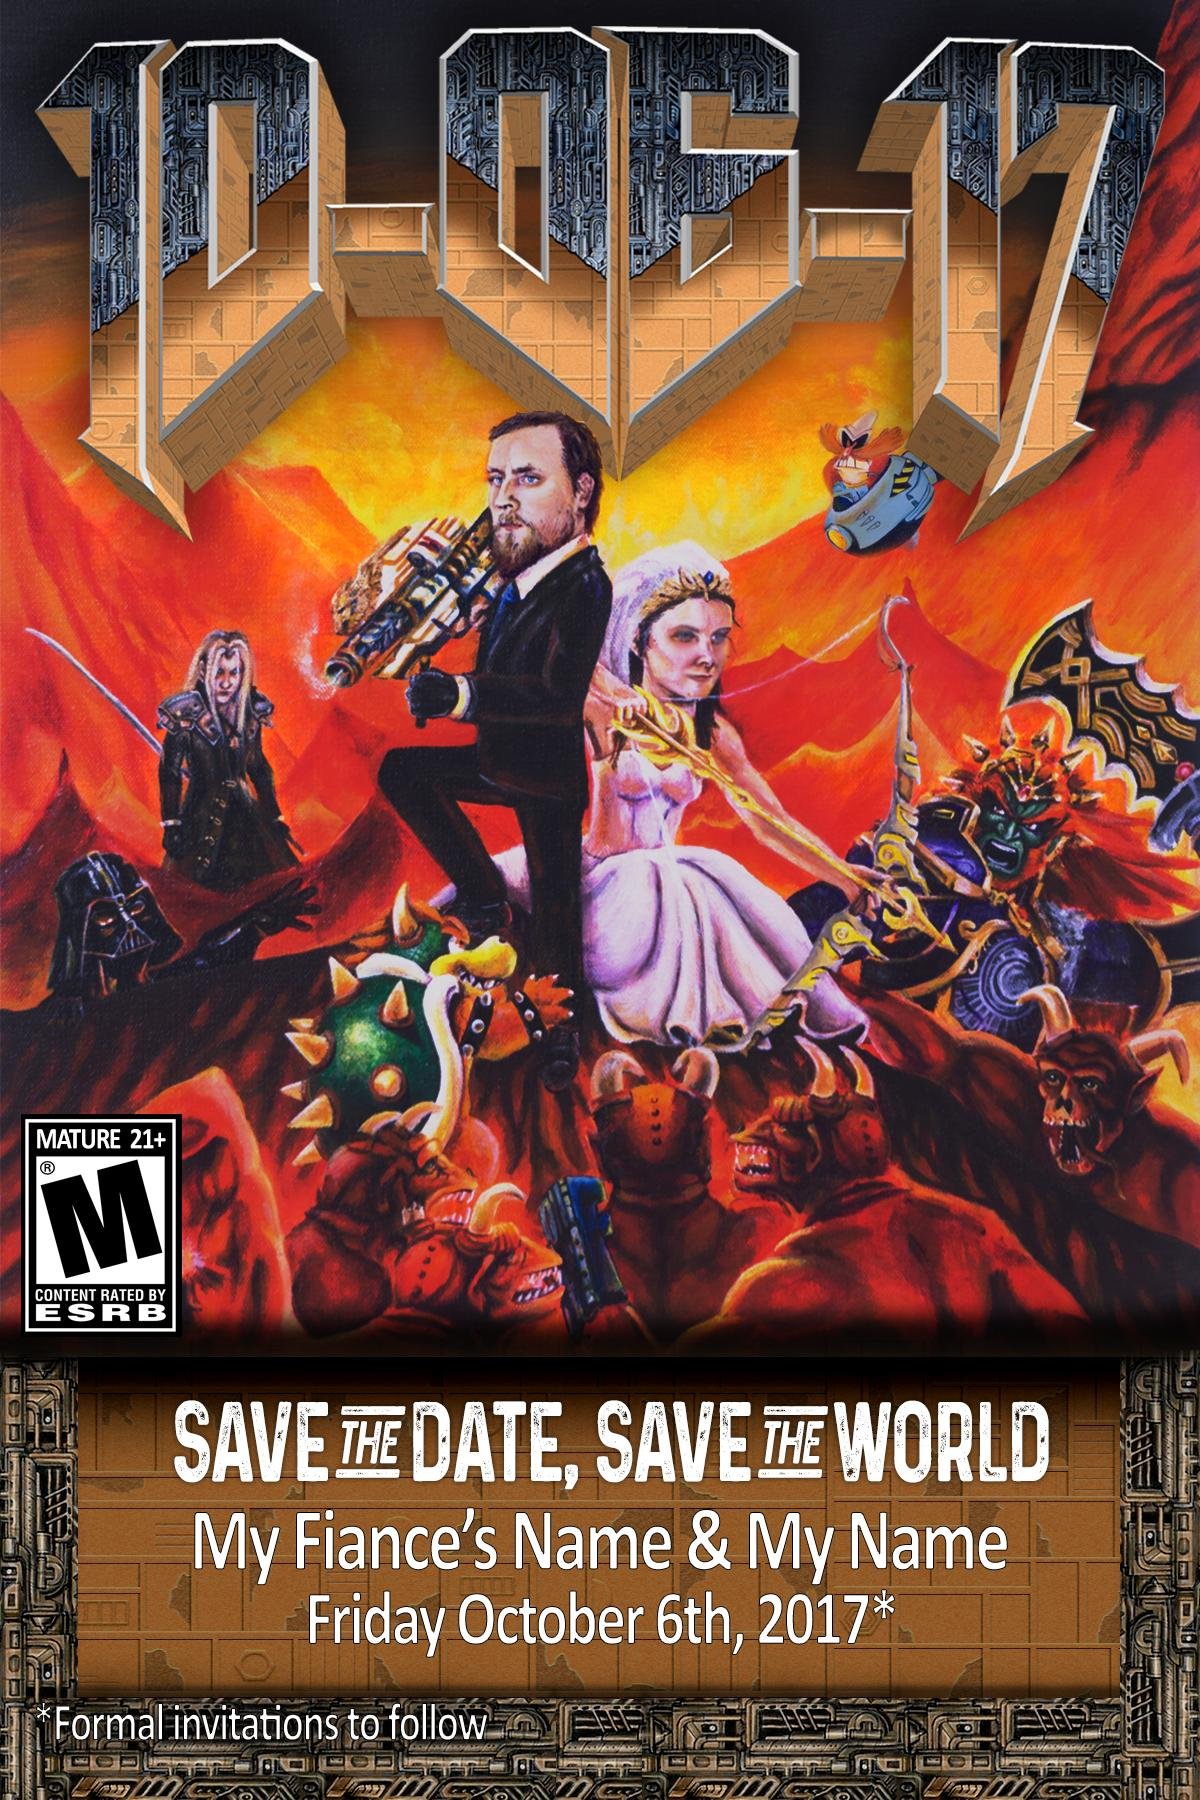 This Wedding Invitation is Doomed :: Games :: News :: DOOM :: Paste